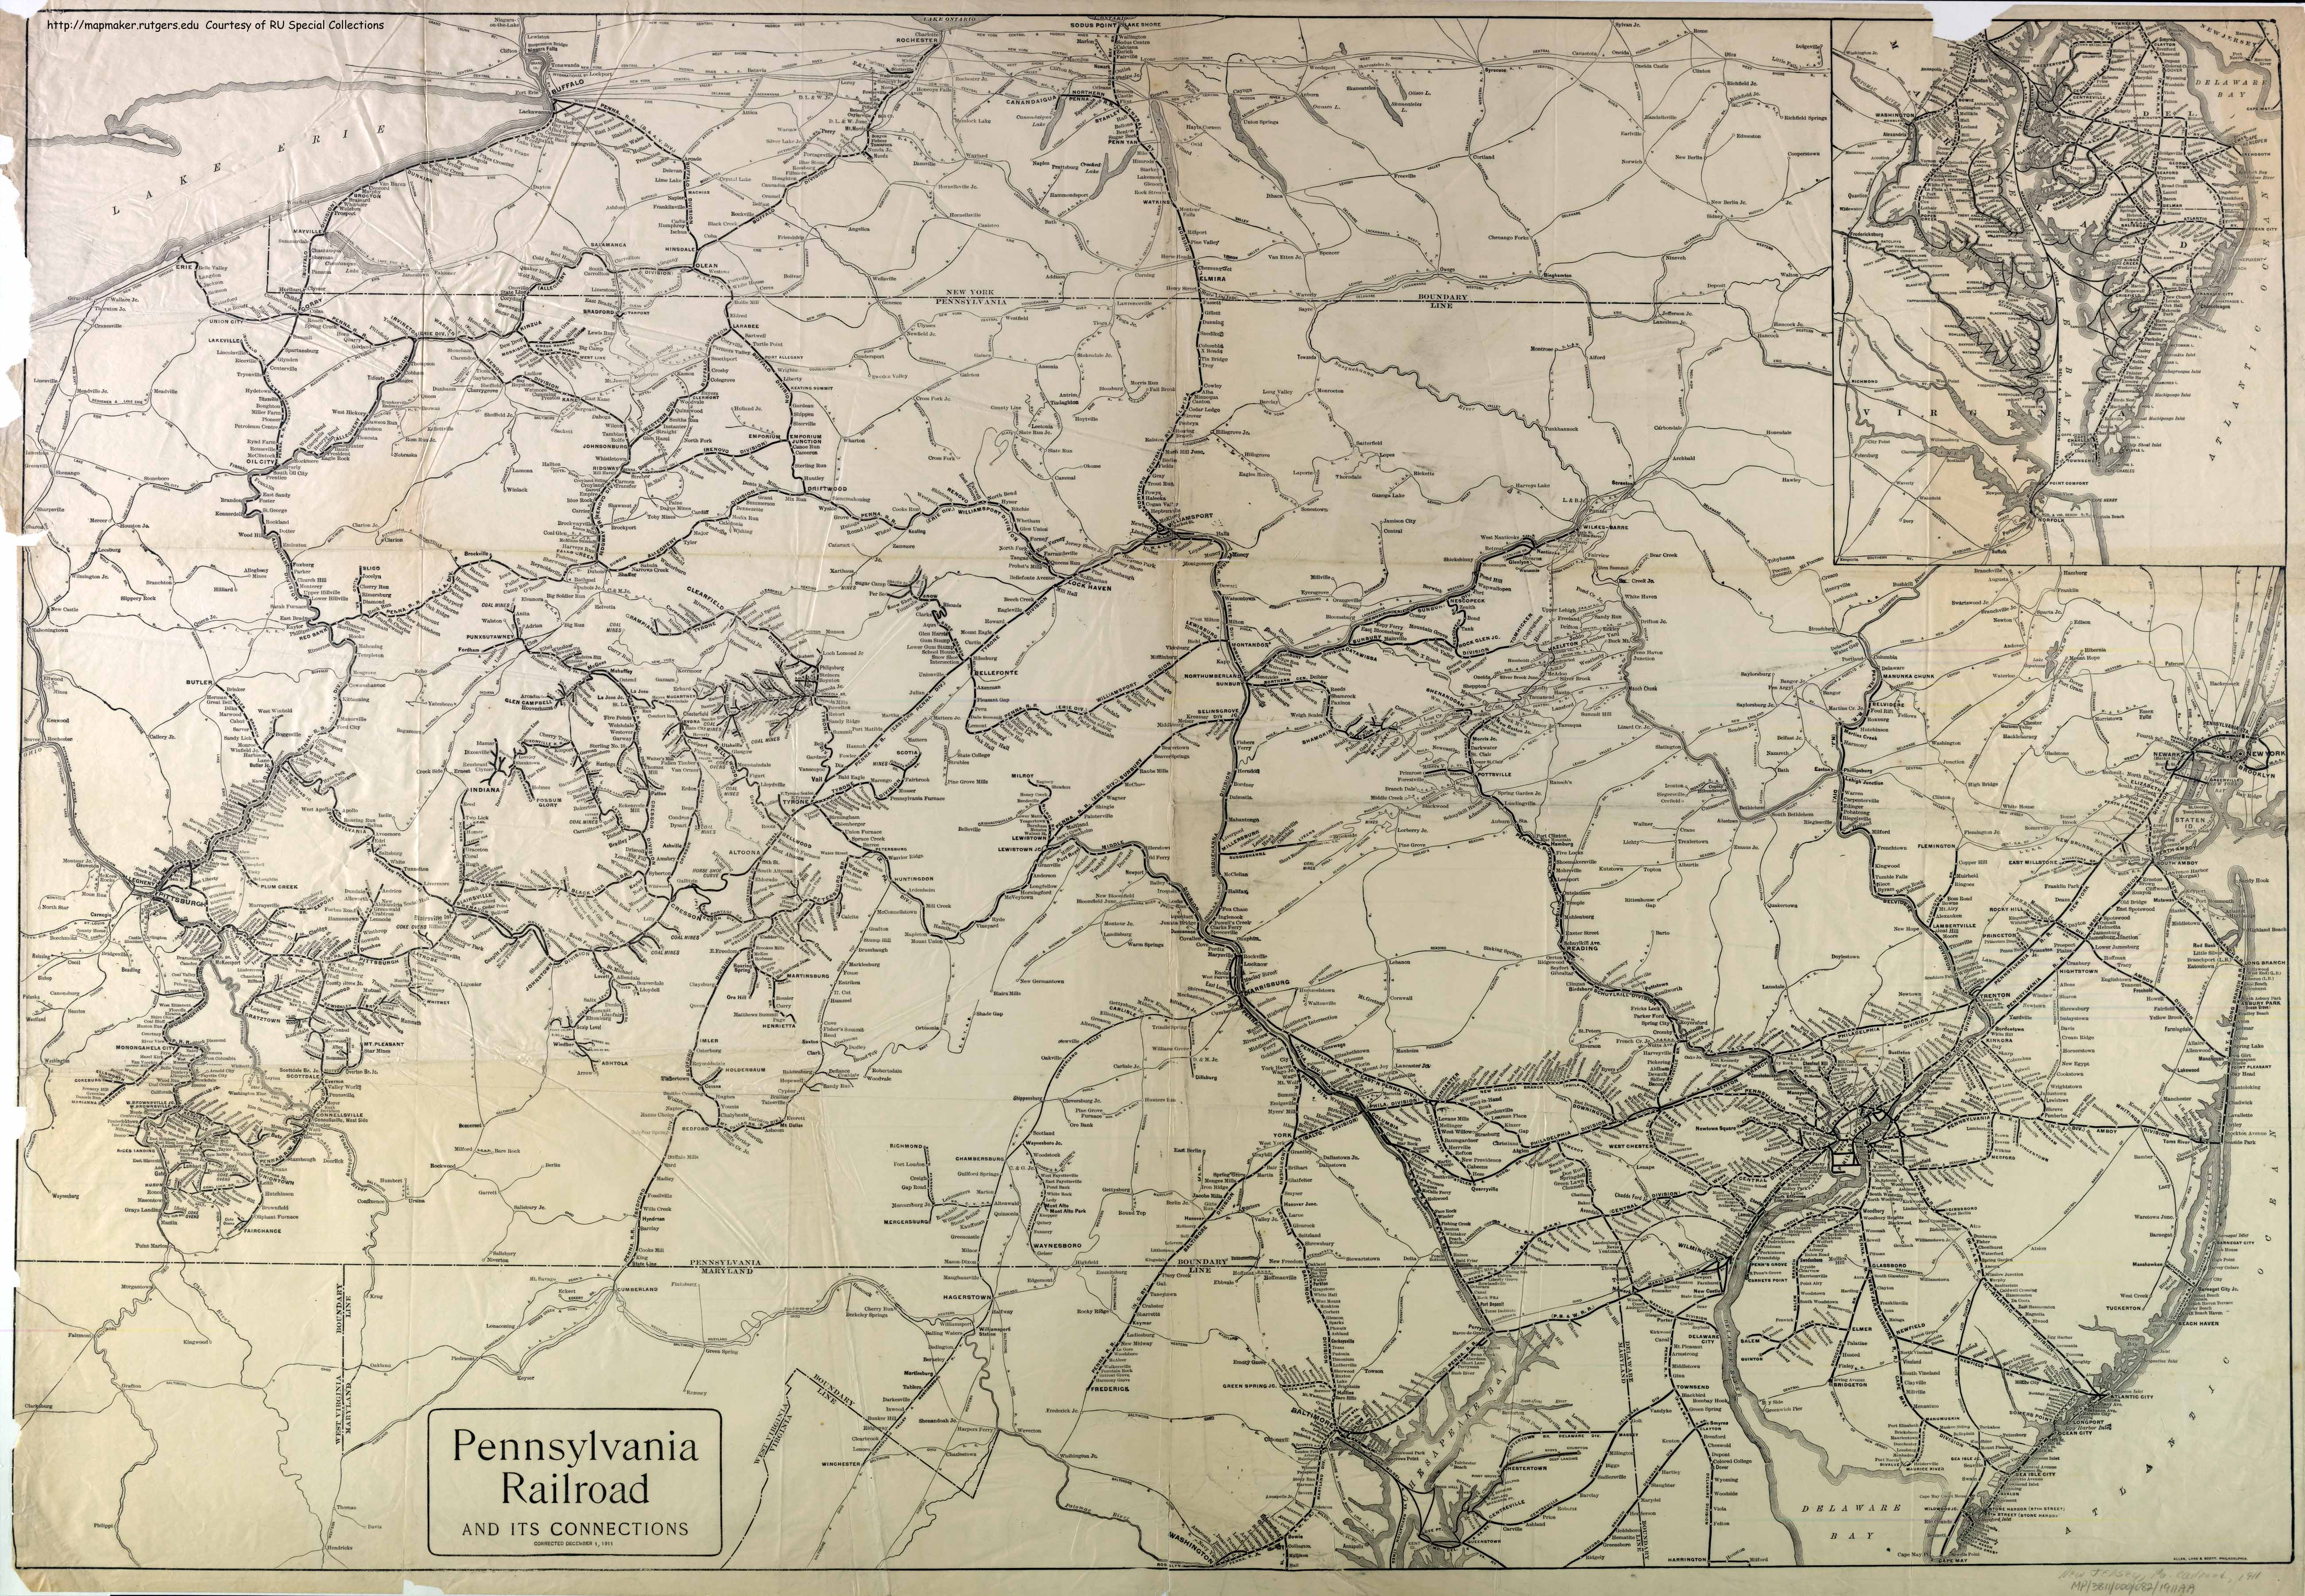 Pennsylvania RR System Map - Old us railroad map